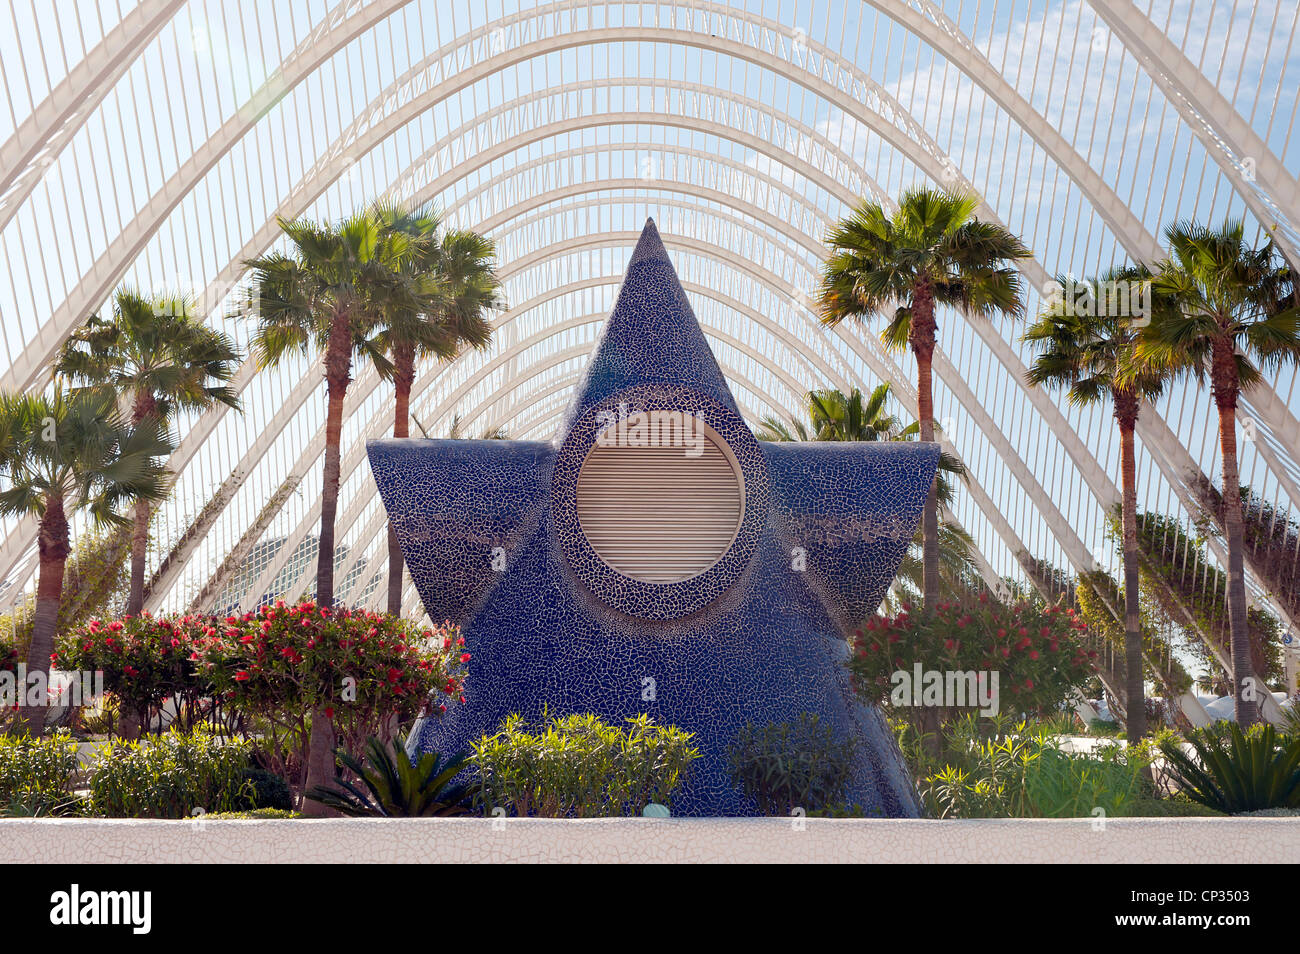 Umbrace Landscaped walk at the City of Arts and Sciences Valencia Spain Stock Photo